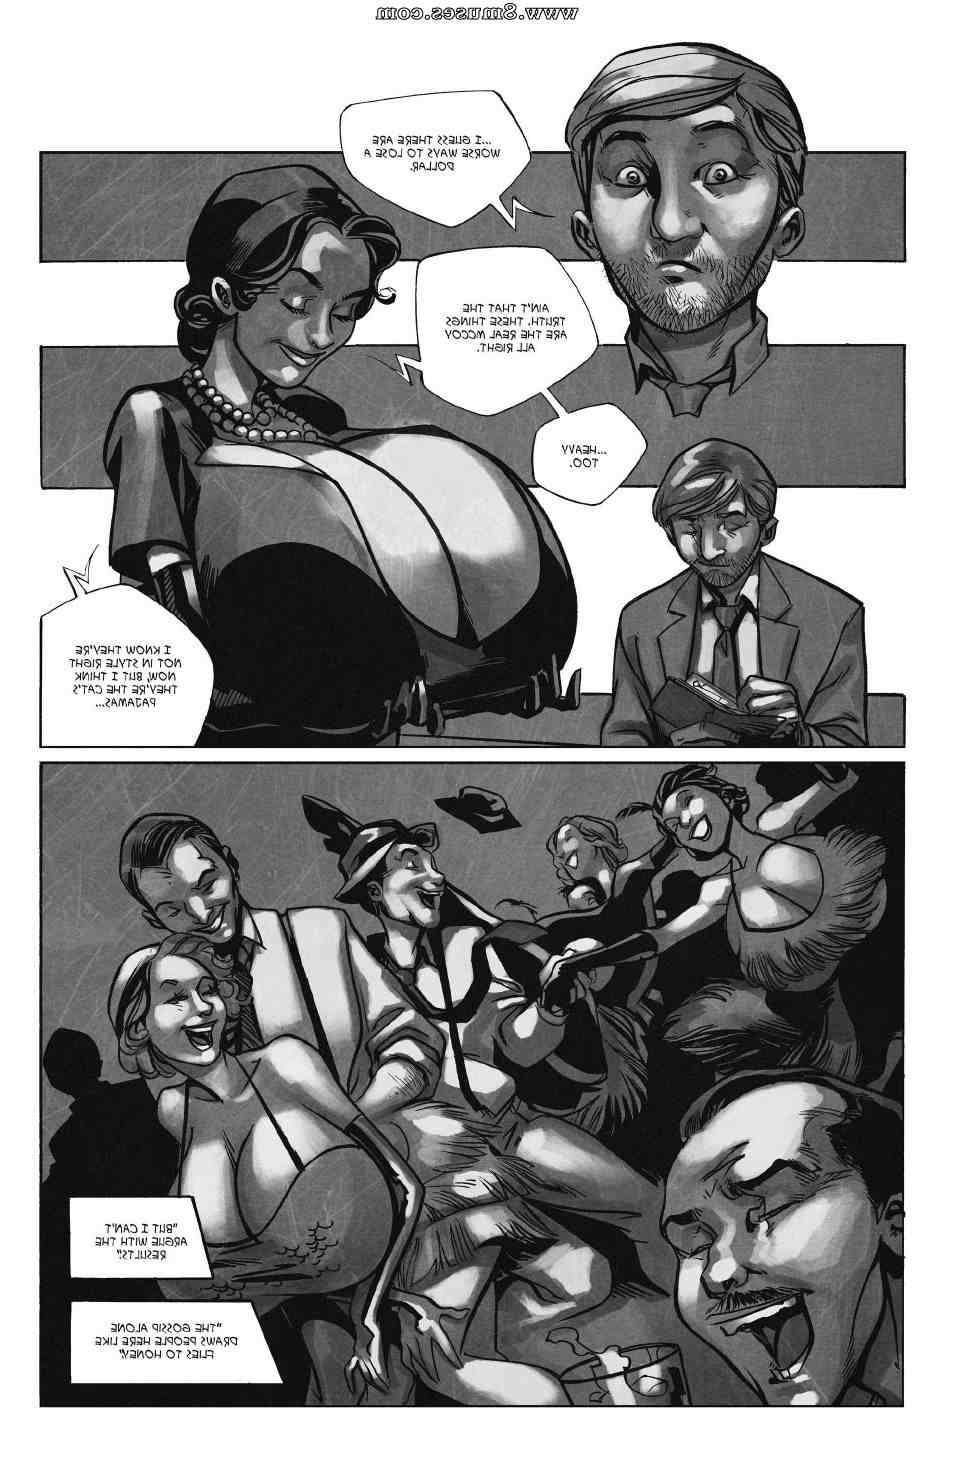 BE-Story-Club-Comics/The-Lucky-Lady The_Lucky_Lady__8muses_-_Sex_and_Porn_Comics_19.jpg